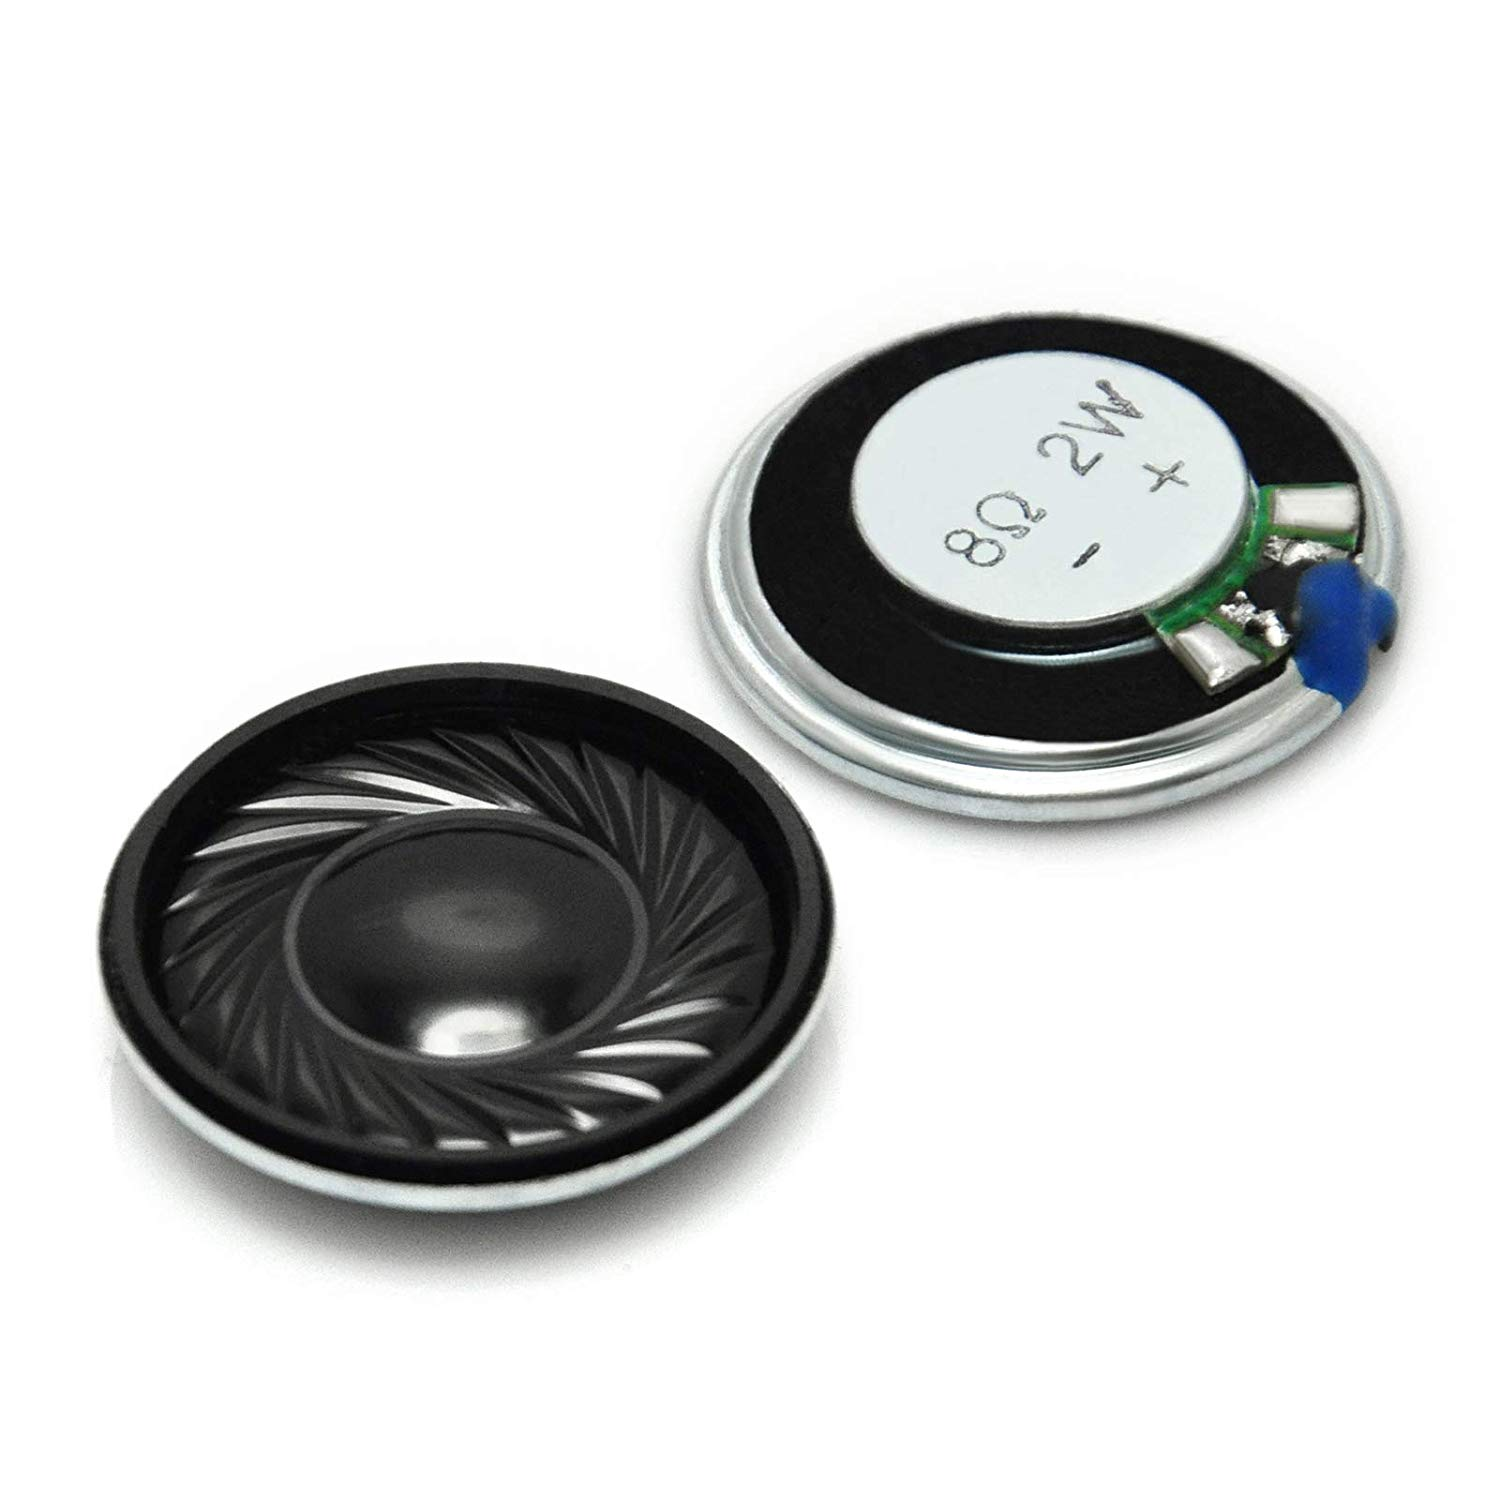 5pcs 2W 8R Mini Speaker 8 Ohm 2 Watt Ultra-thin Horn Speaker Diameter 40MM 4CM Thickness Loudspeaker For Arduino Loud Speaker